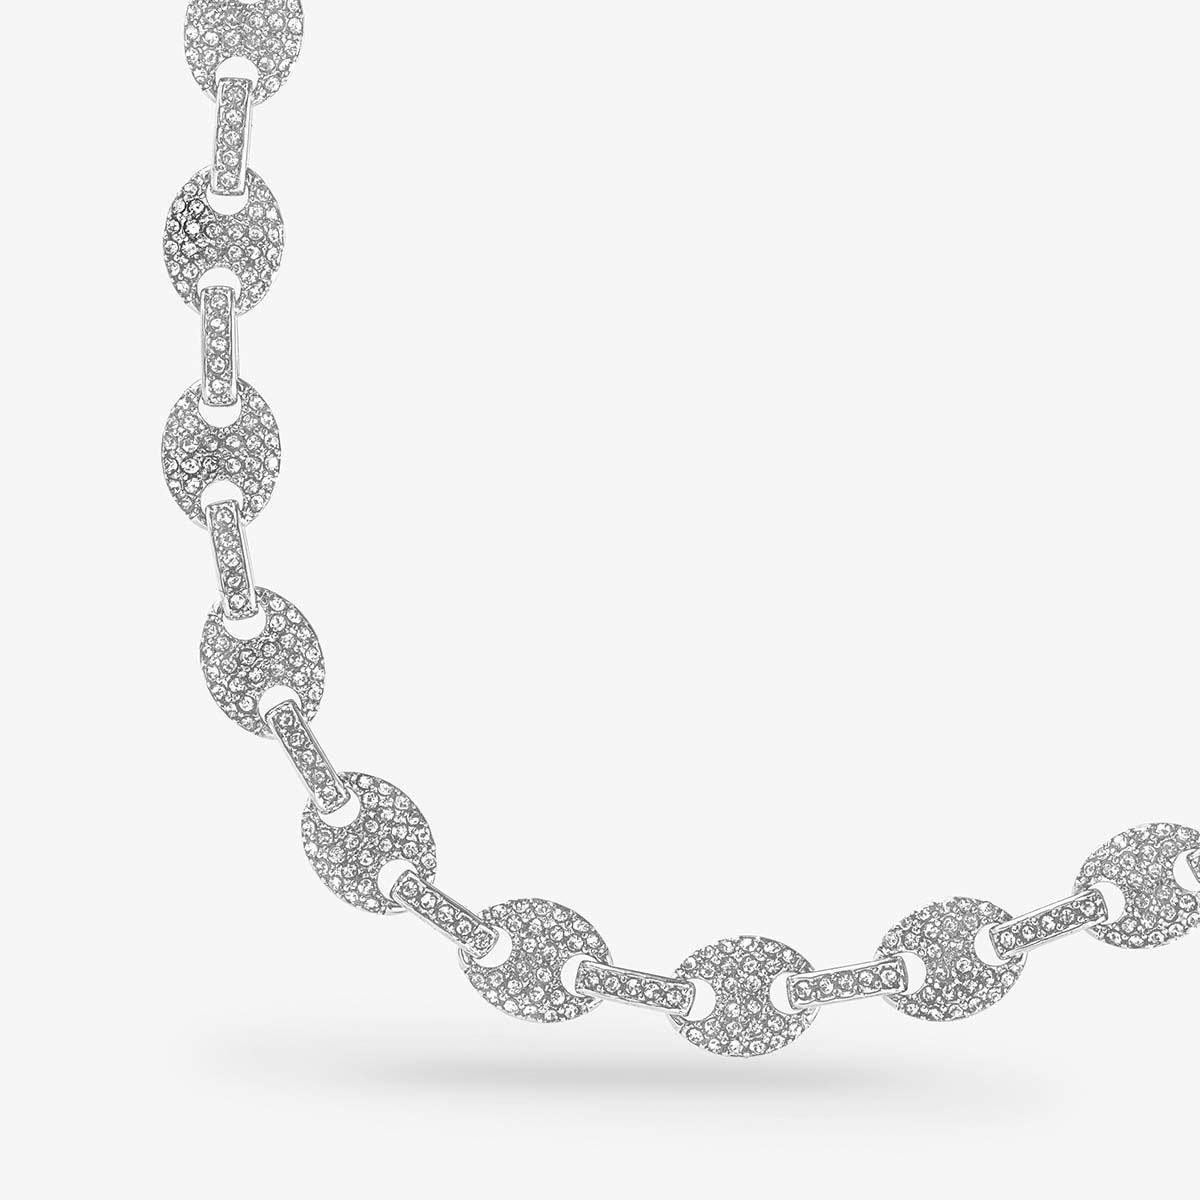 The Pave Mariner Chain Necklace - Halsketten - Silber